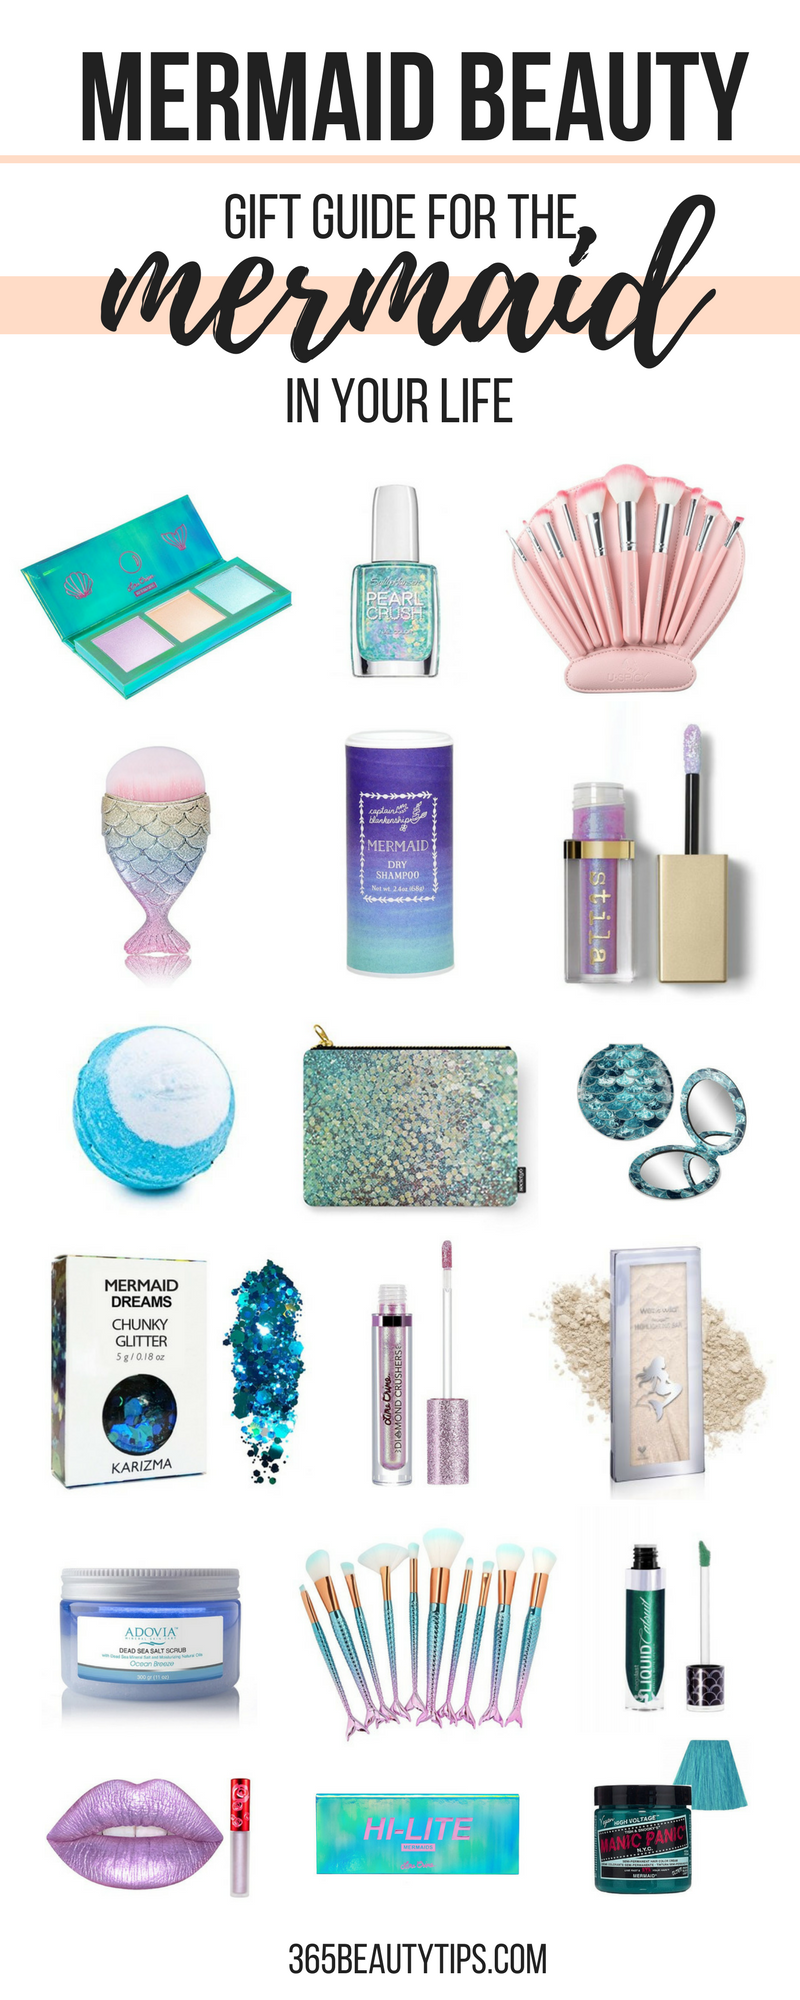 Mermaid Beauty Products Holiday Gift Guide For The Mermaid In